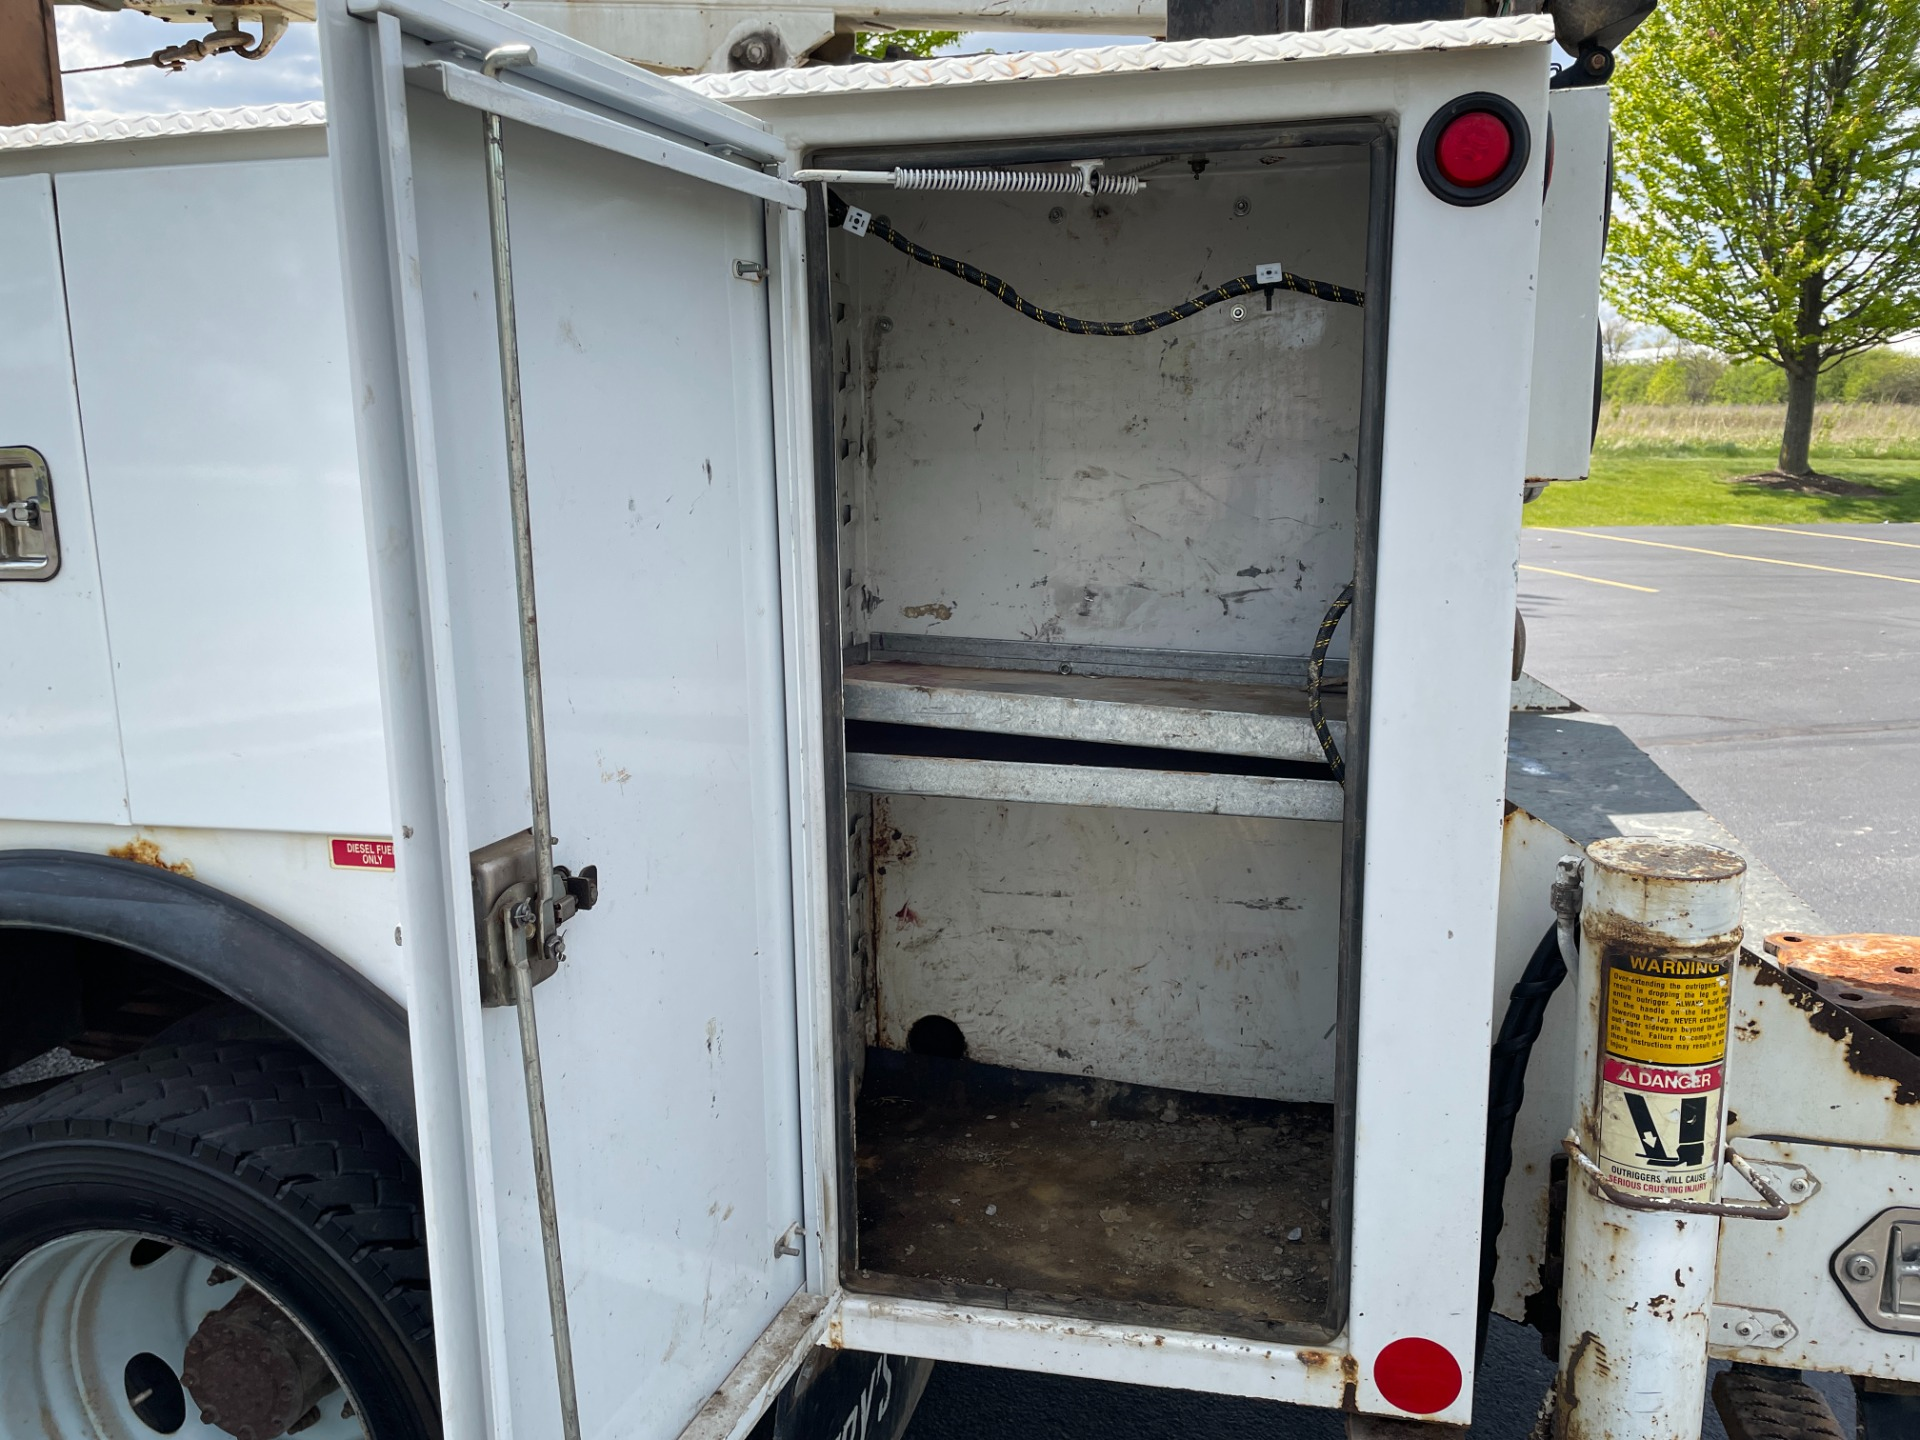 Used-2002-Ford-F550-Service-Truck---73-Liter-Diesel---IMT-Crane-and-Compressor